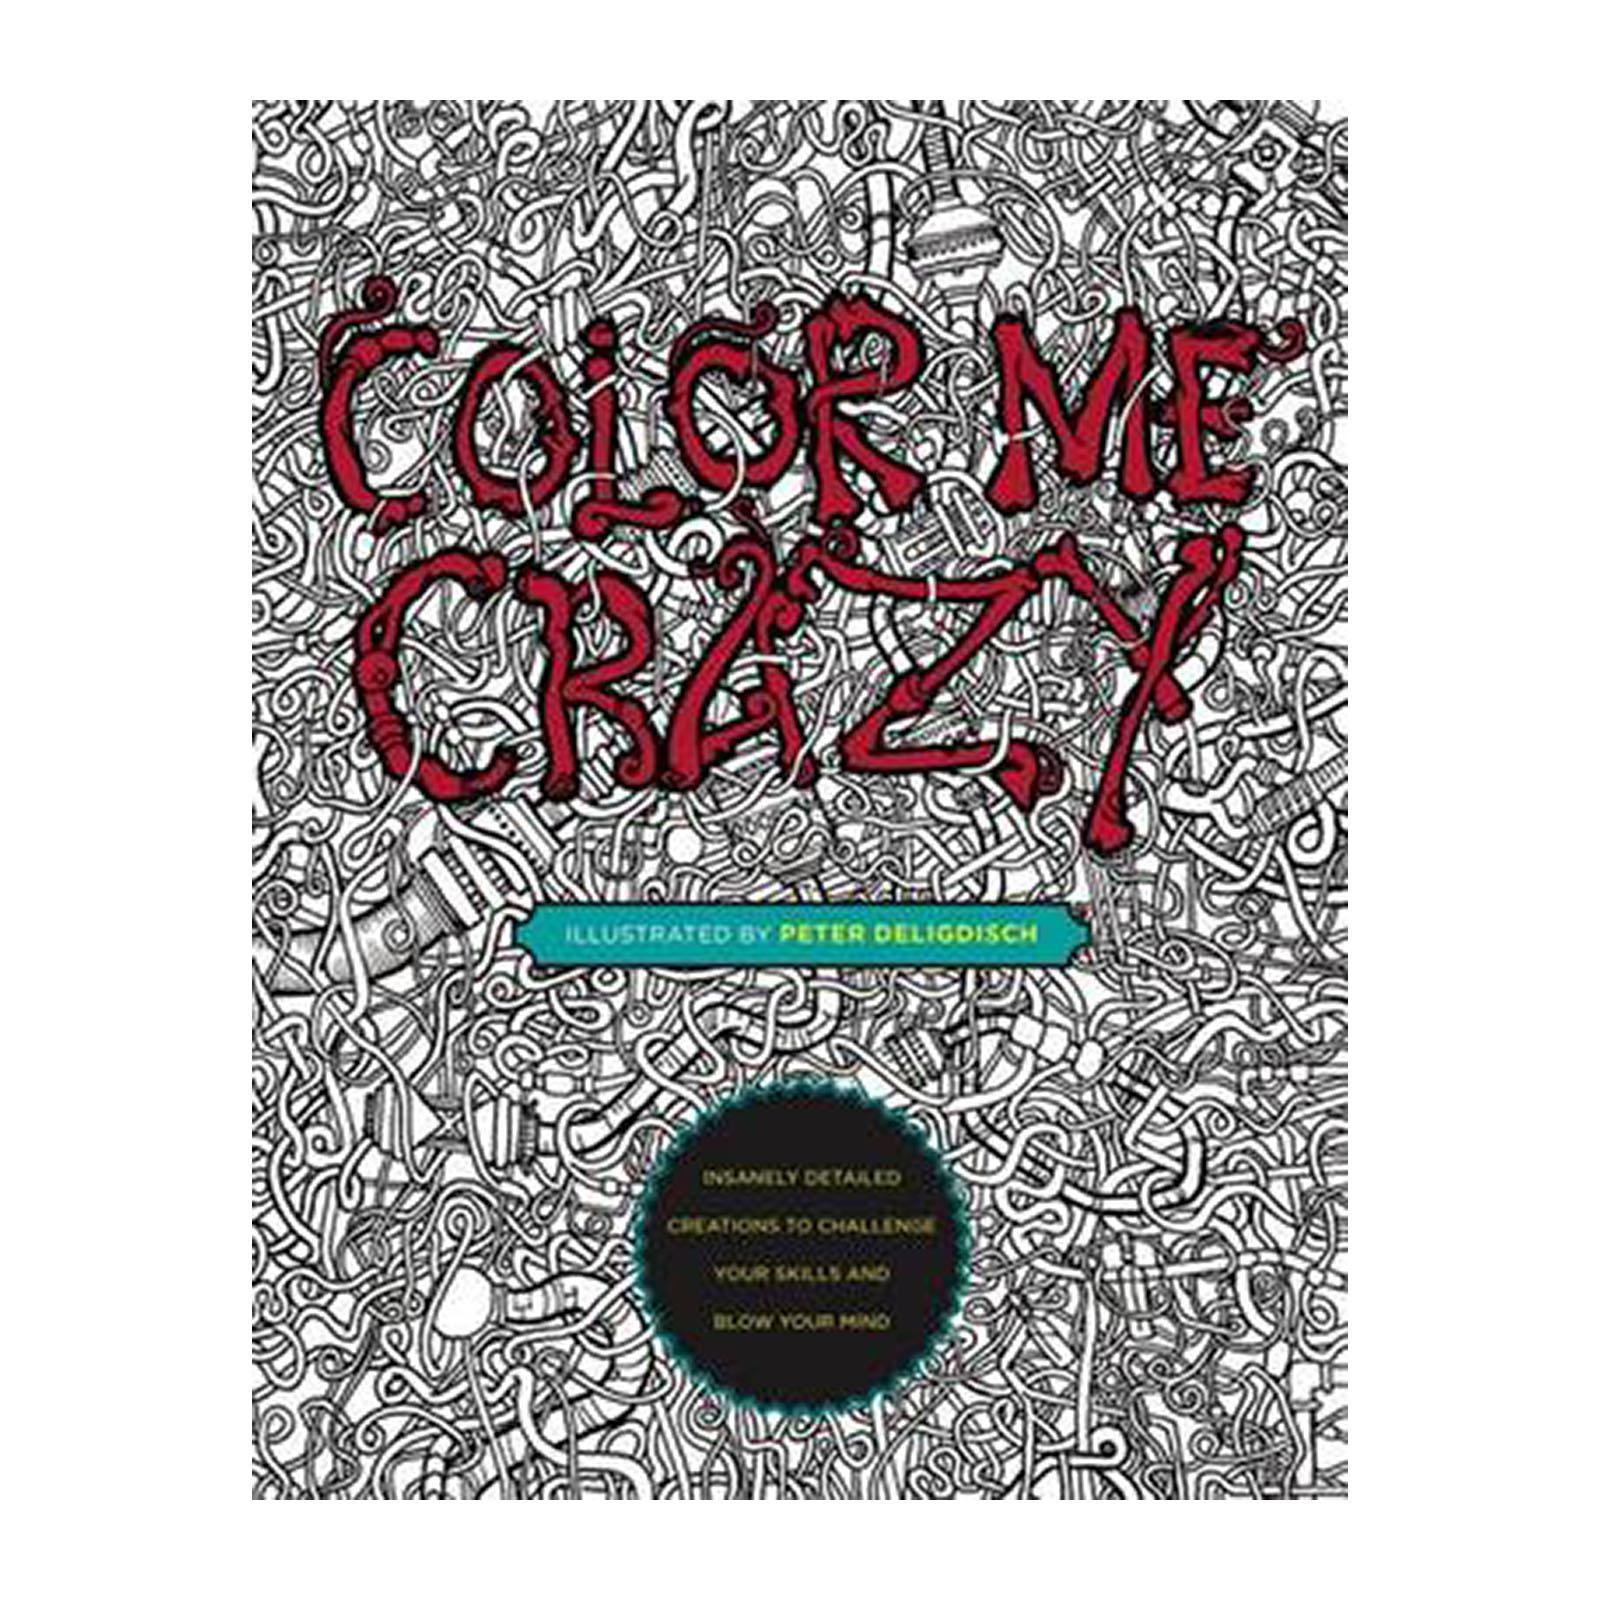 Color Me Crazy: Insanely Detailed Creations To Challenge Your Skills And Blow Your Mind (Paperback)